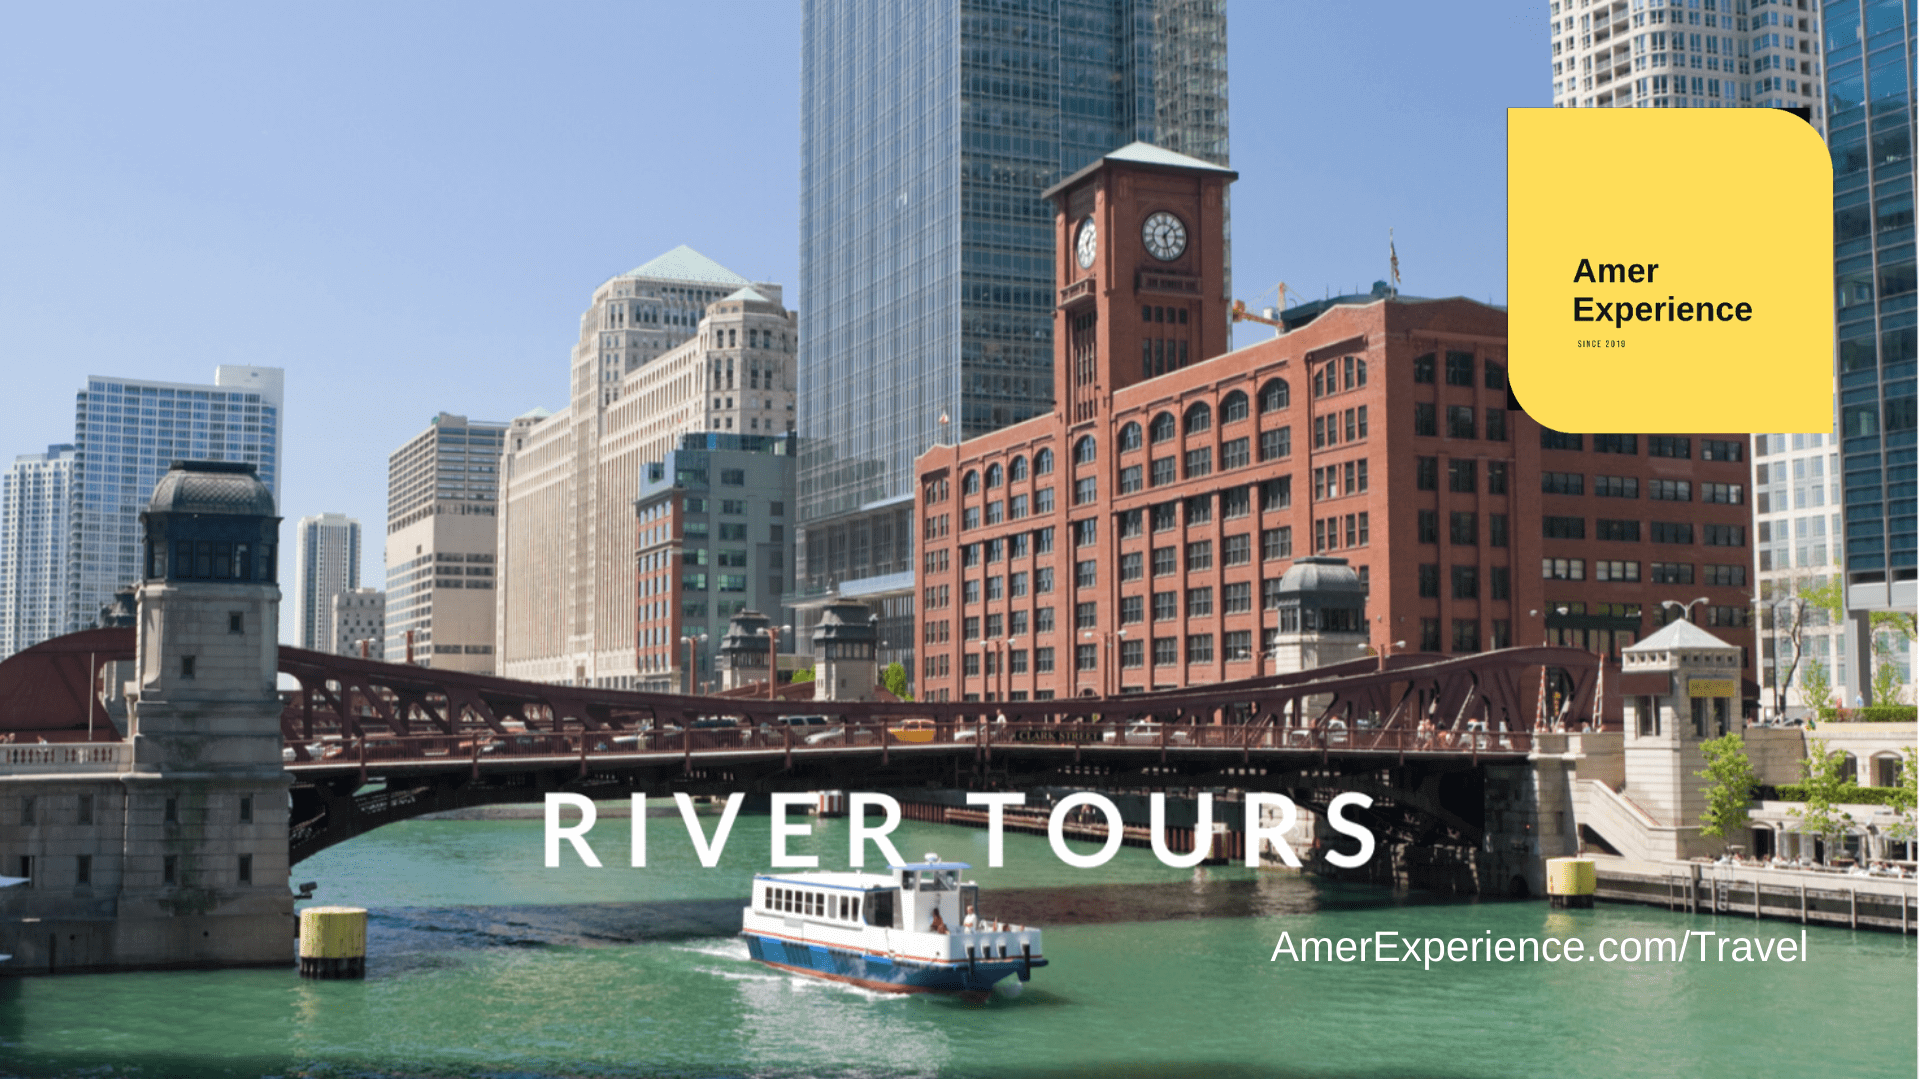 What is the most beautiful river cruise? River cruising is the fastest-growing sector of the cruise industry. We have listed for you our Top 15 most popular river cruises in USA, Europe, Australia, and Asia